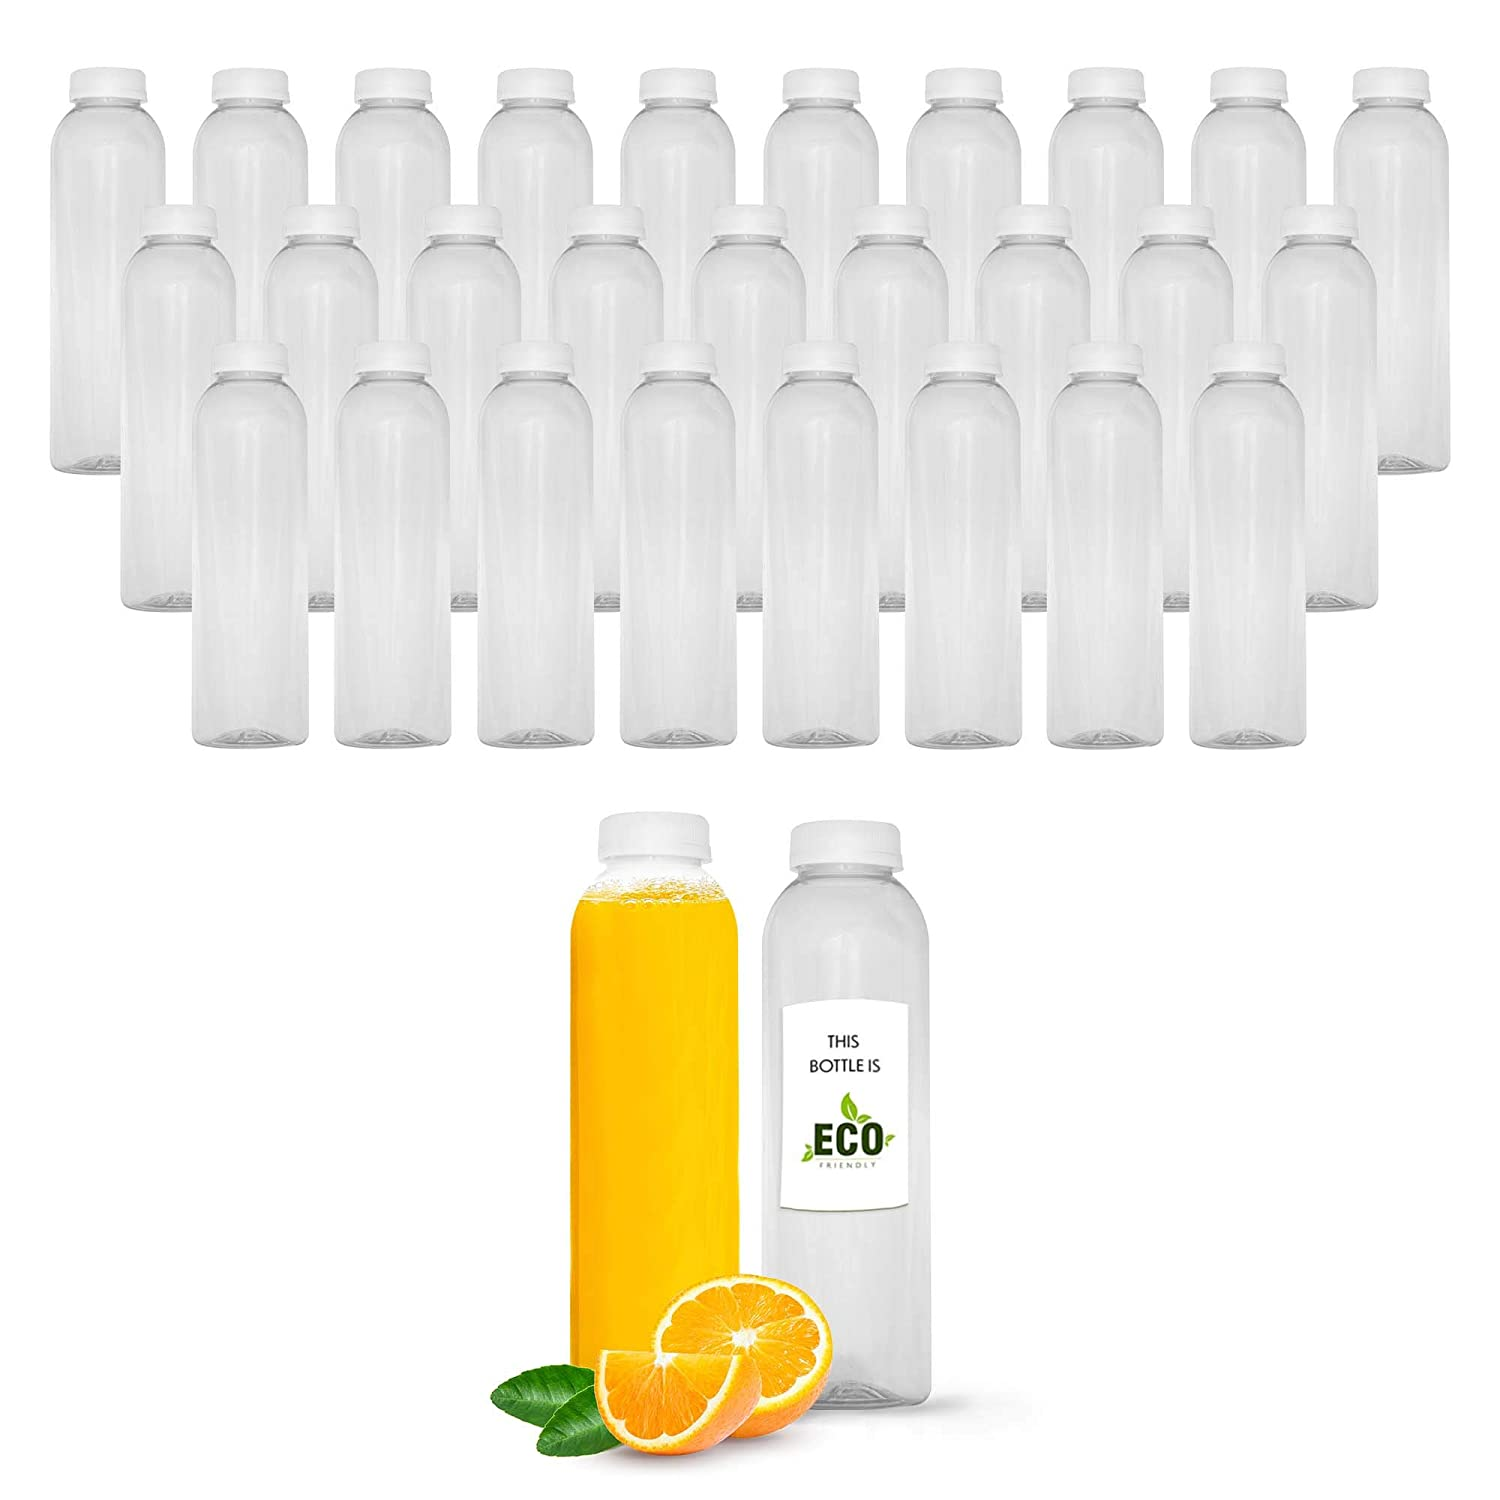 16 OZ Empty Eco Friendly Round PET Plastic Juice Bottles - Pack of 27 Reusable Clear Disposable Milk Bulk Containers with White Tamper Evident Caps Lids